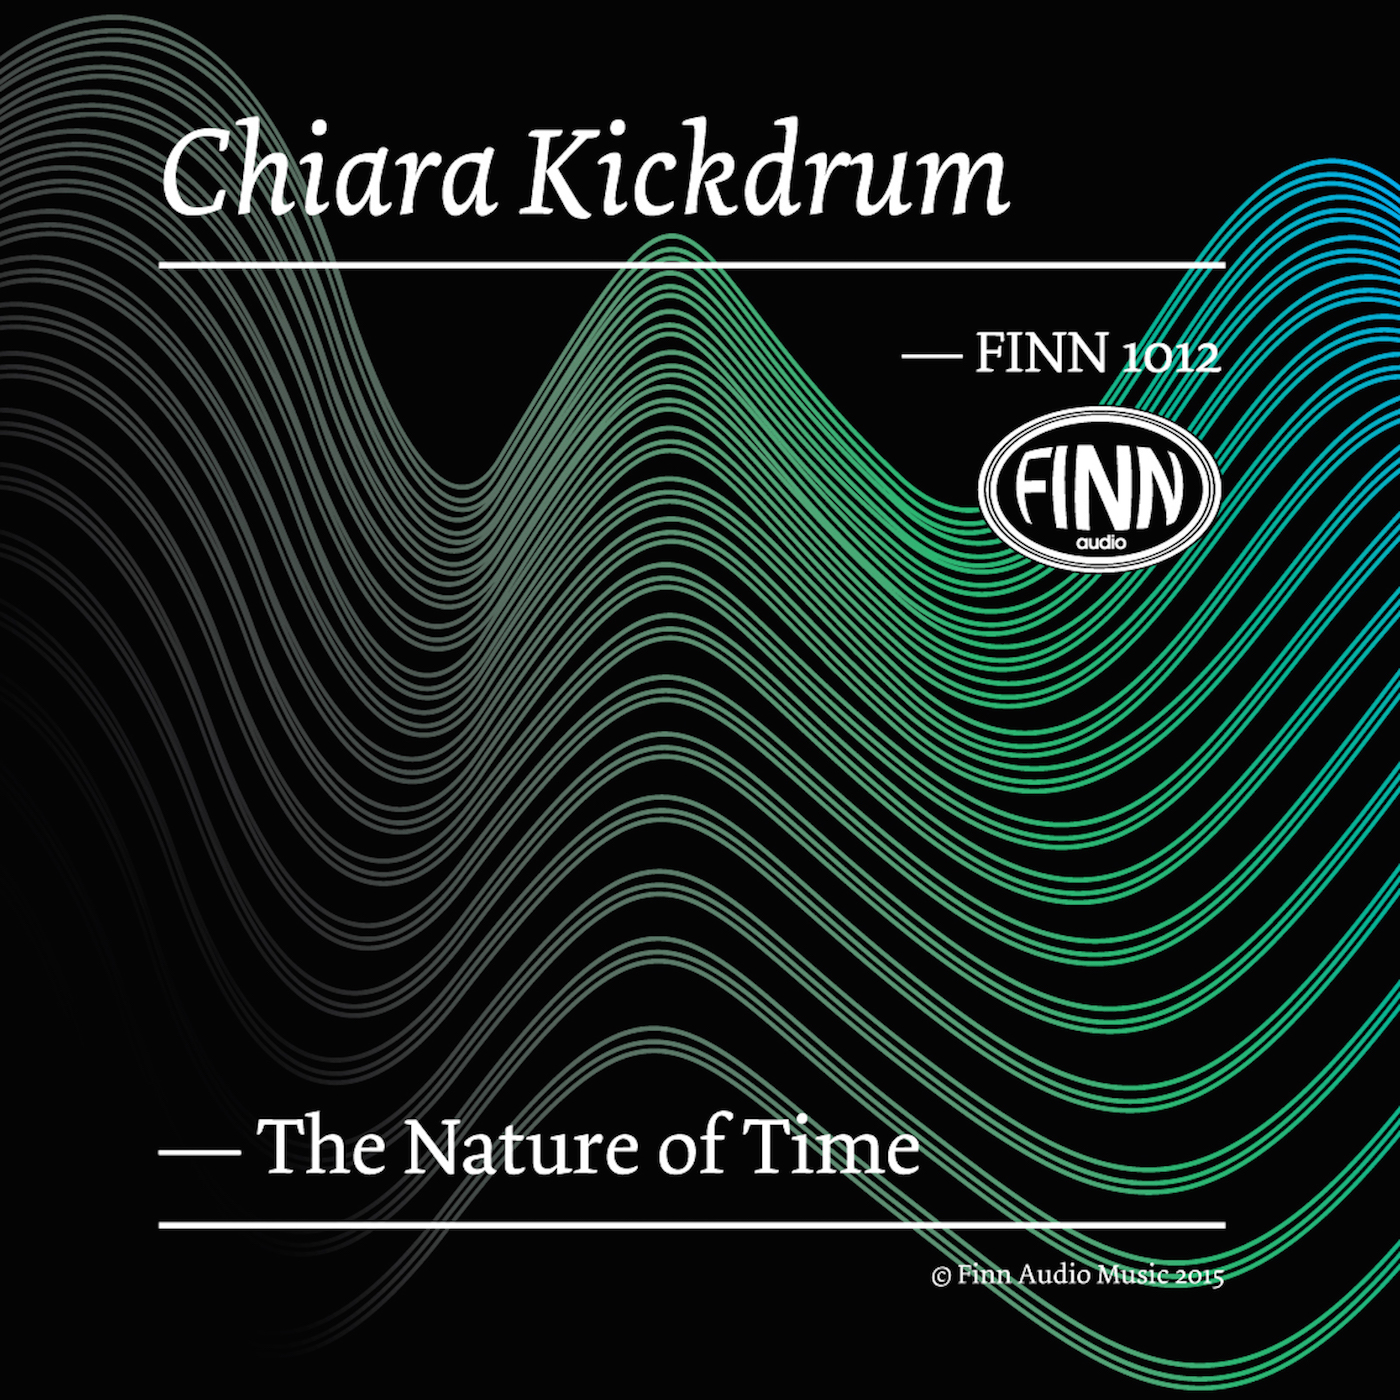 The Nature of Time - Chiara Kickdrum